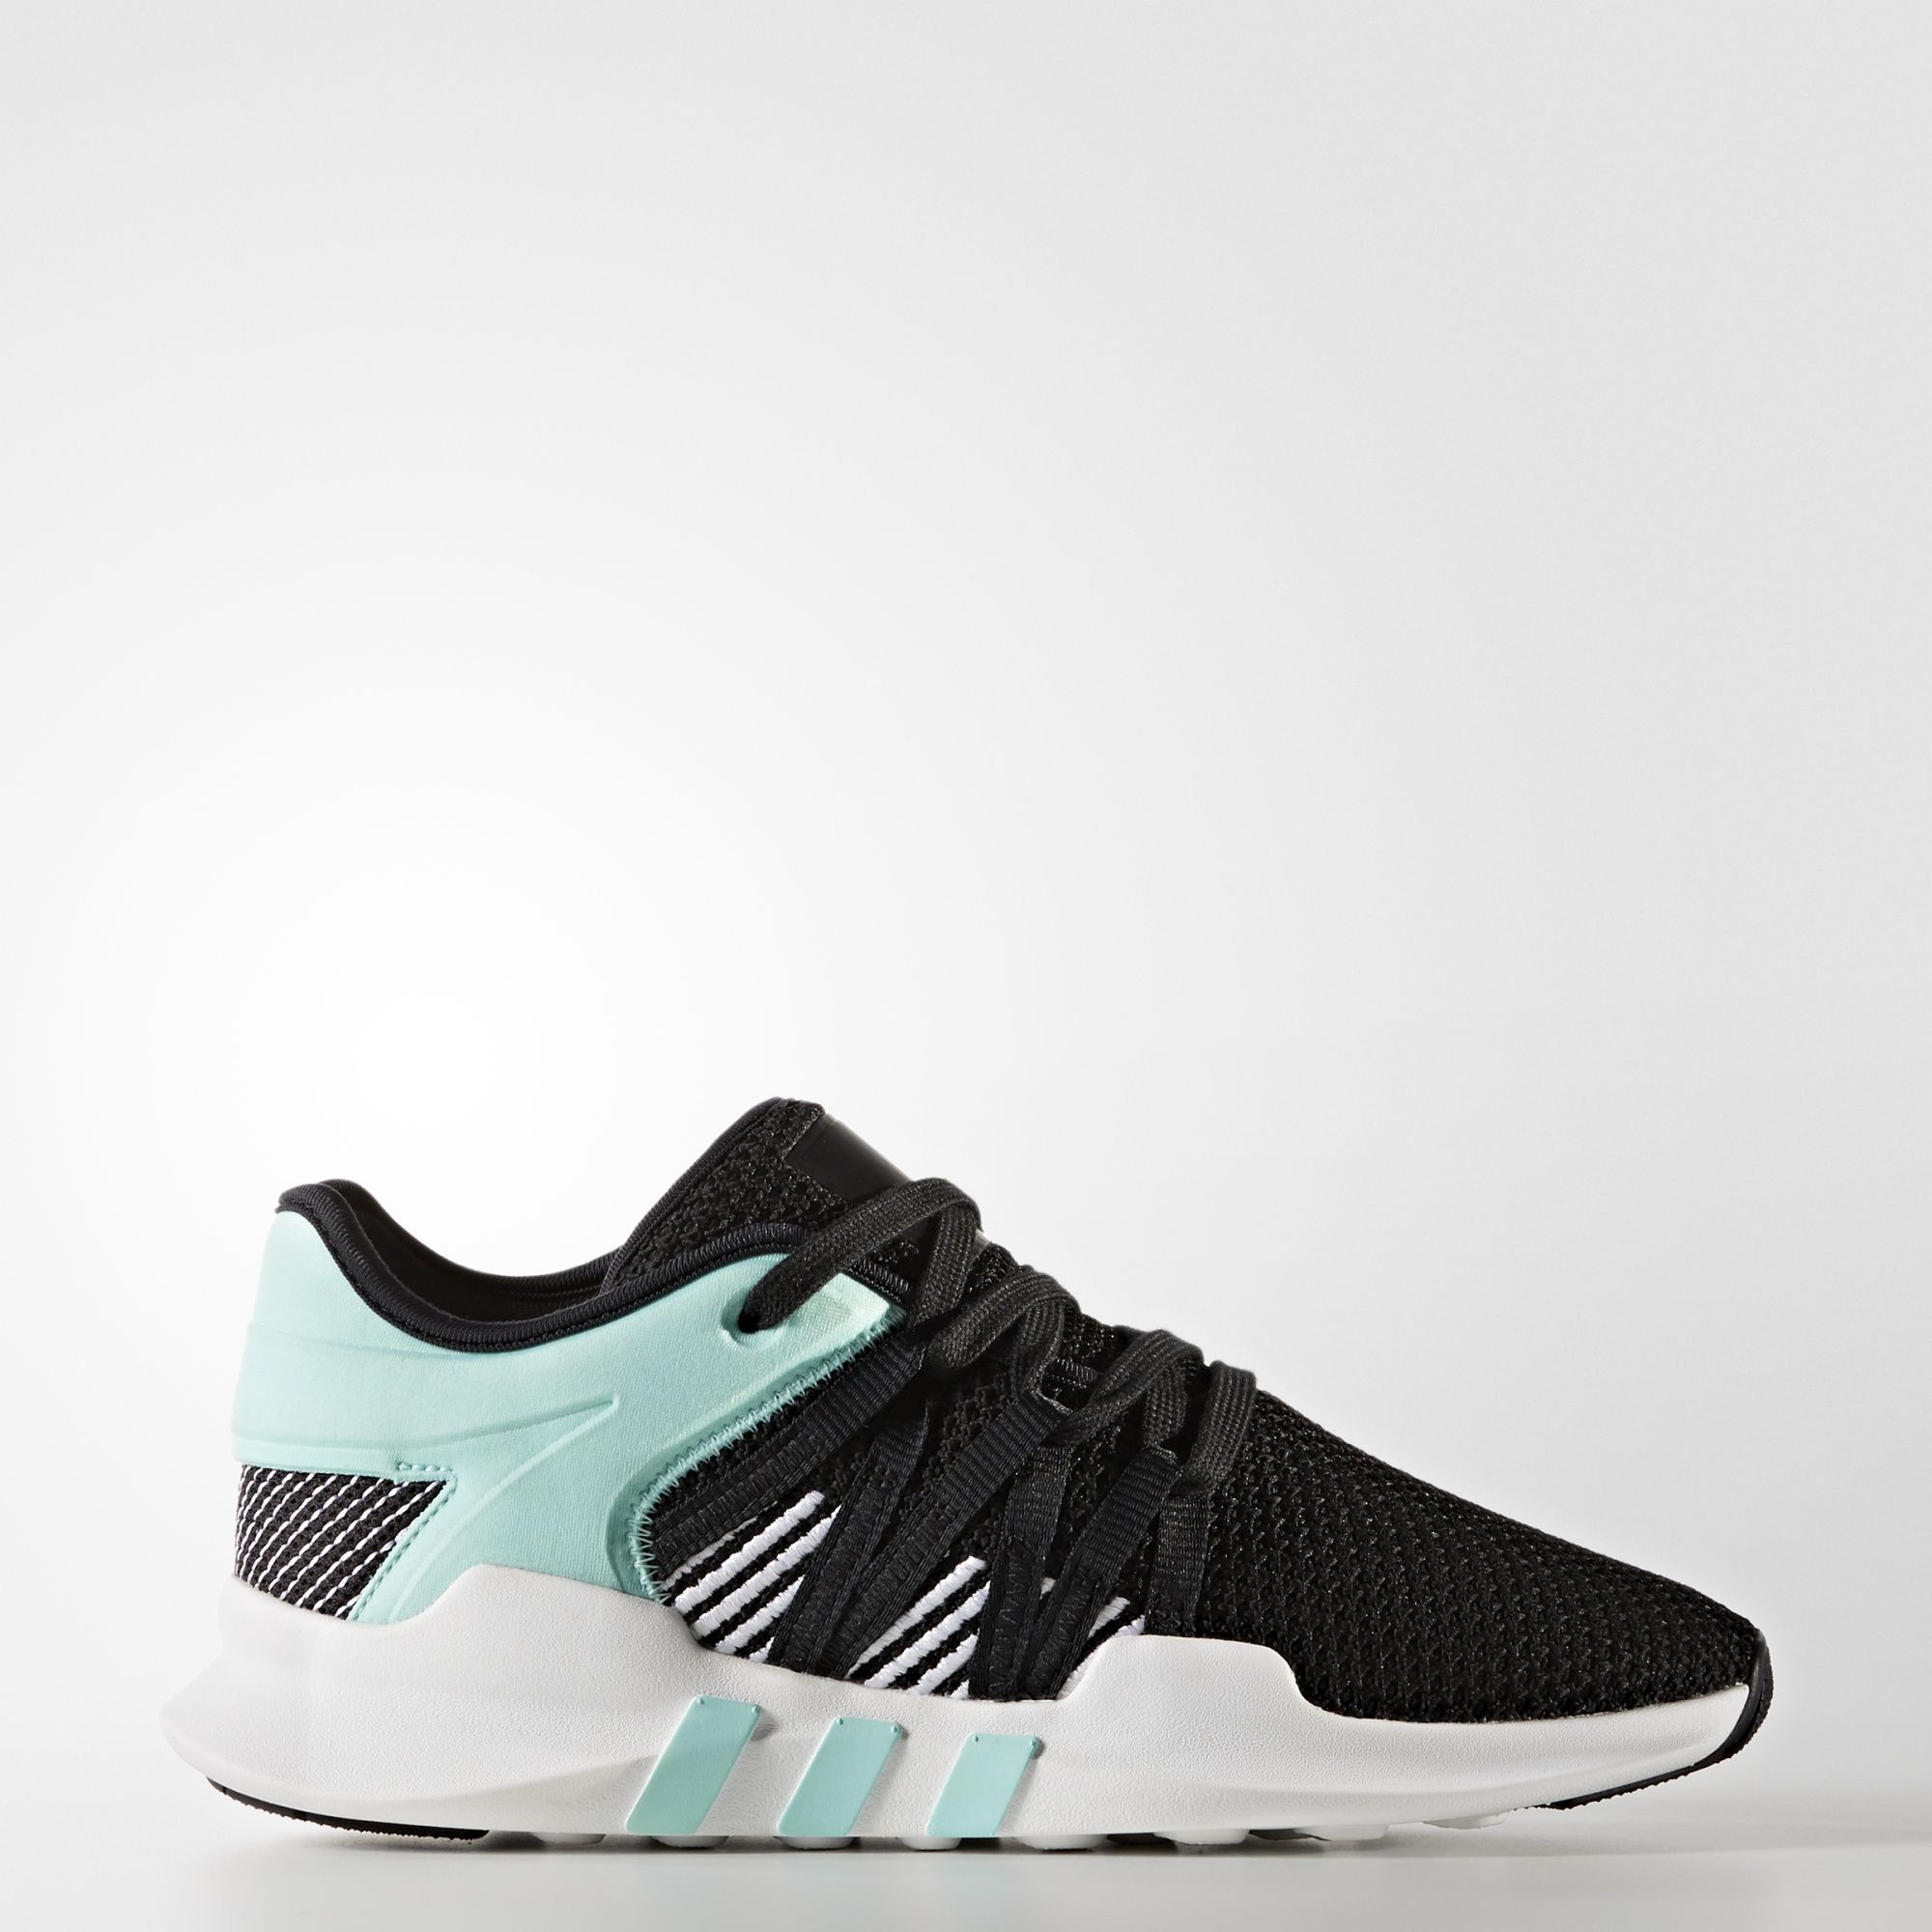 adidas EQT Racing ADV Shoes - Womens Shoes